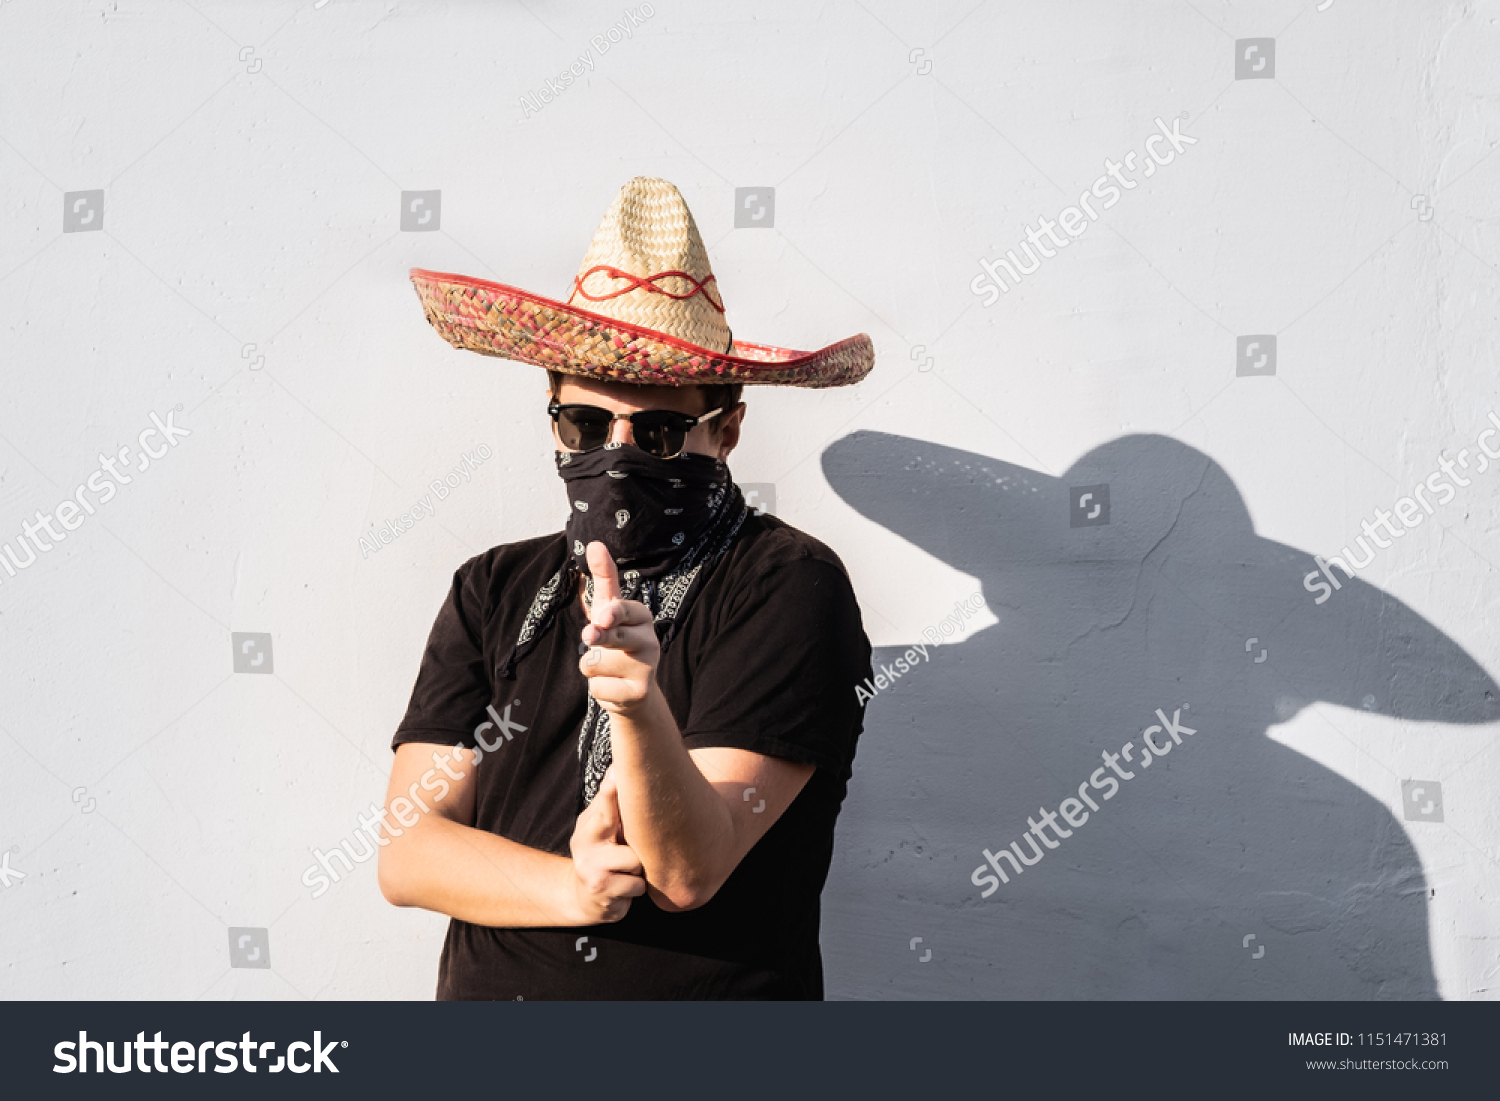 young male person dressed traditional sombrero stock photo (edit now